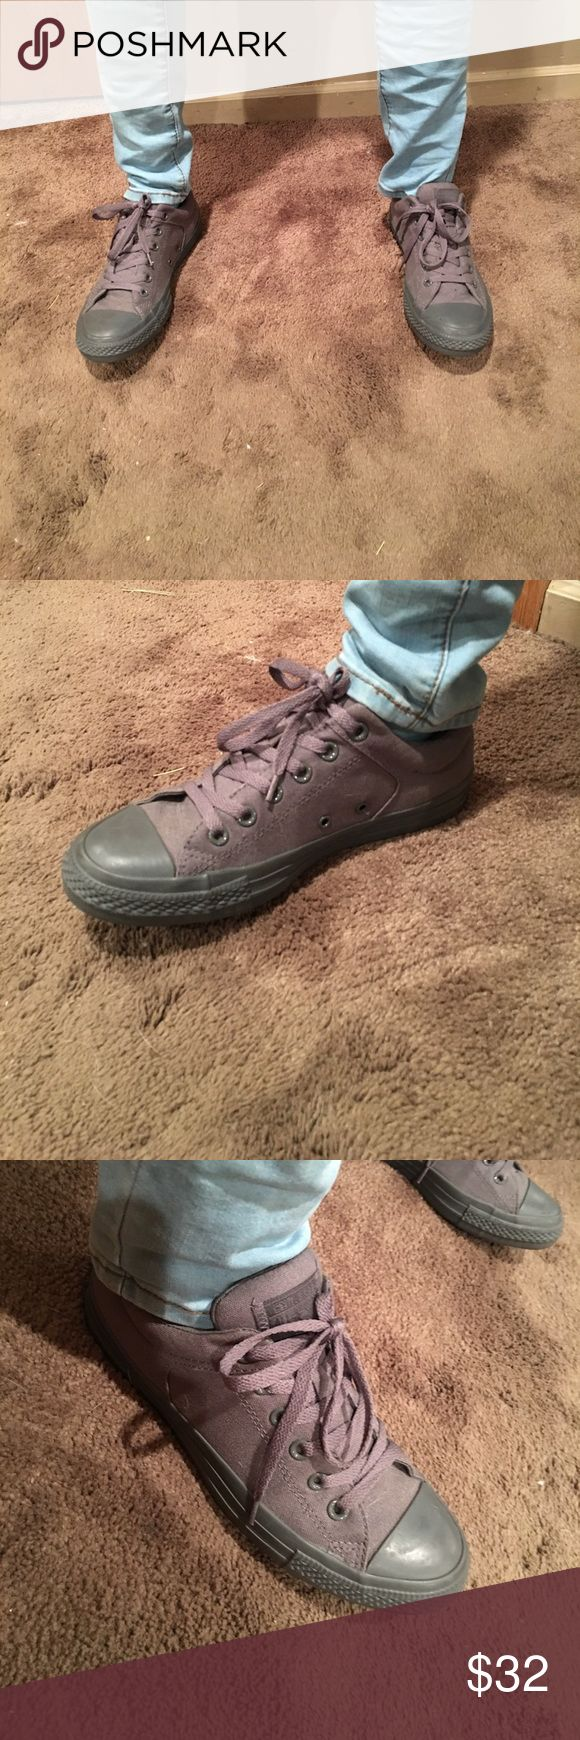 All Gray Converse Low Top All Gray Converse Low Tops Size Men's 7. Good Condition, very minor scuffs on the toes. Comes with Original box! Converse Shoes Athletic Shoes